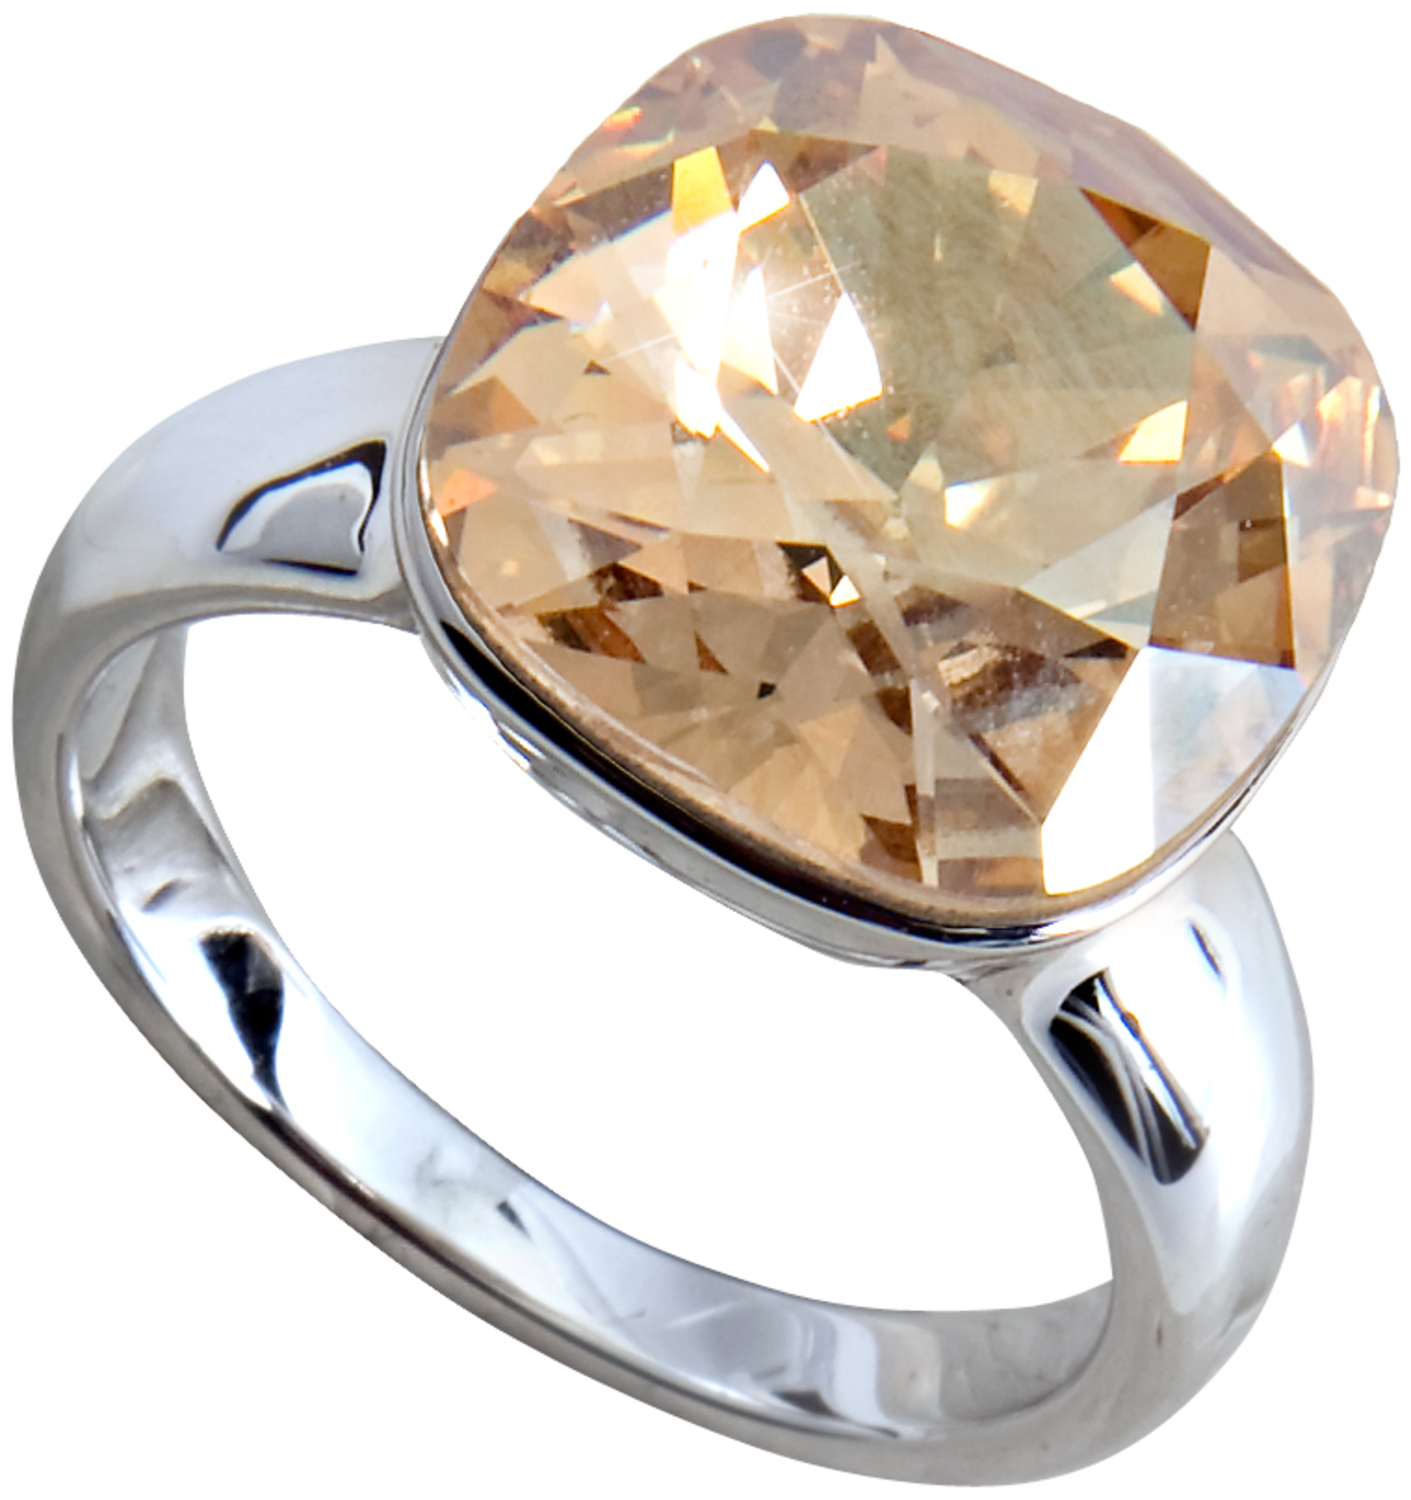 0fa2f853a Pavilion-Size 8 Gold Crystal Ring made from Swarovski Elements ...